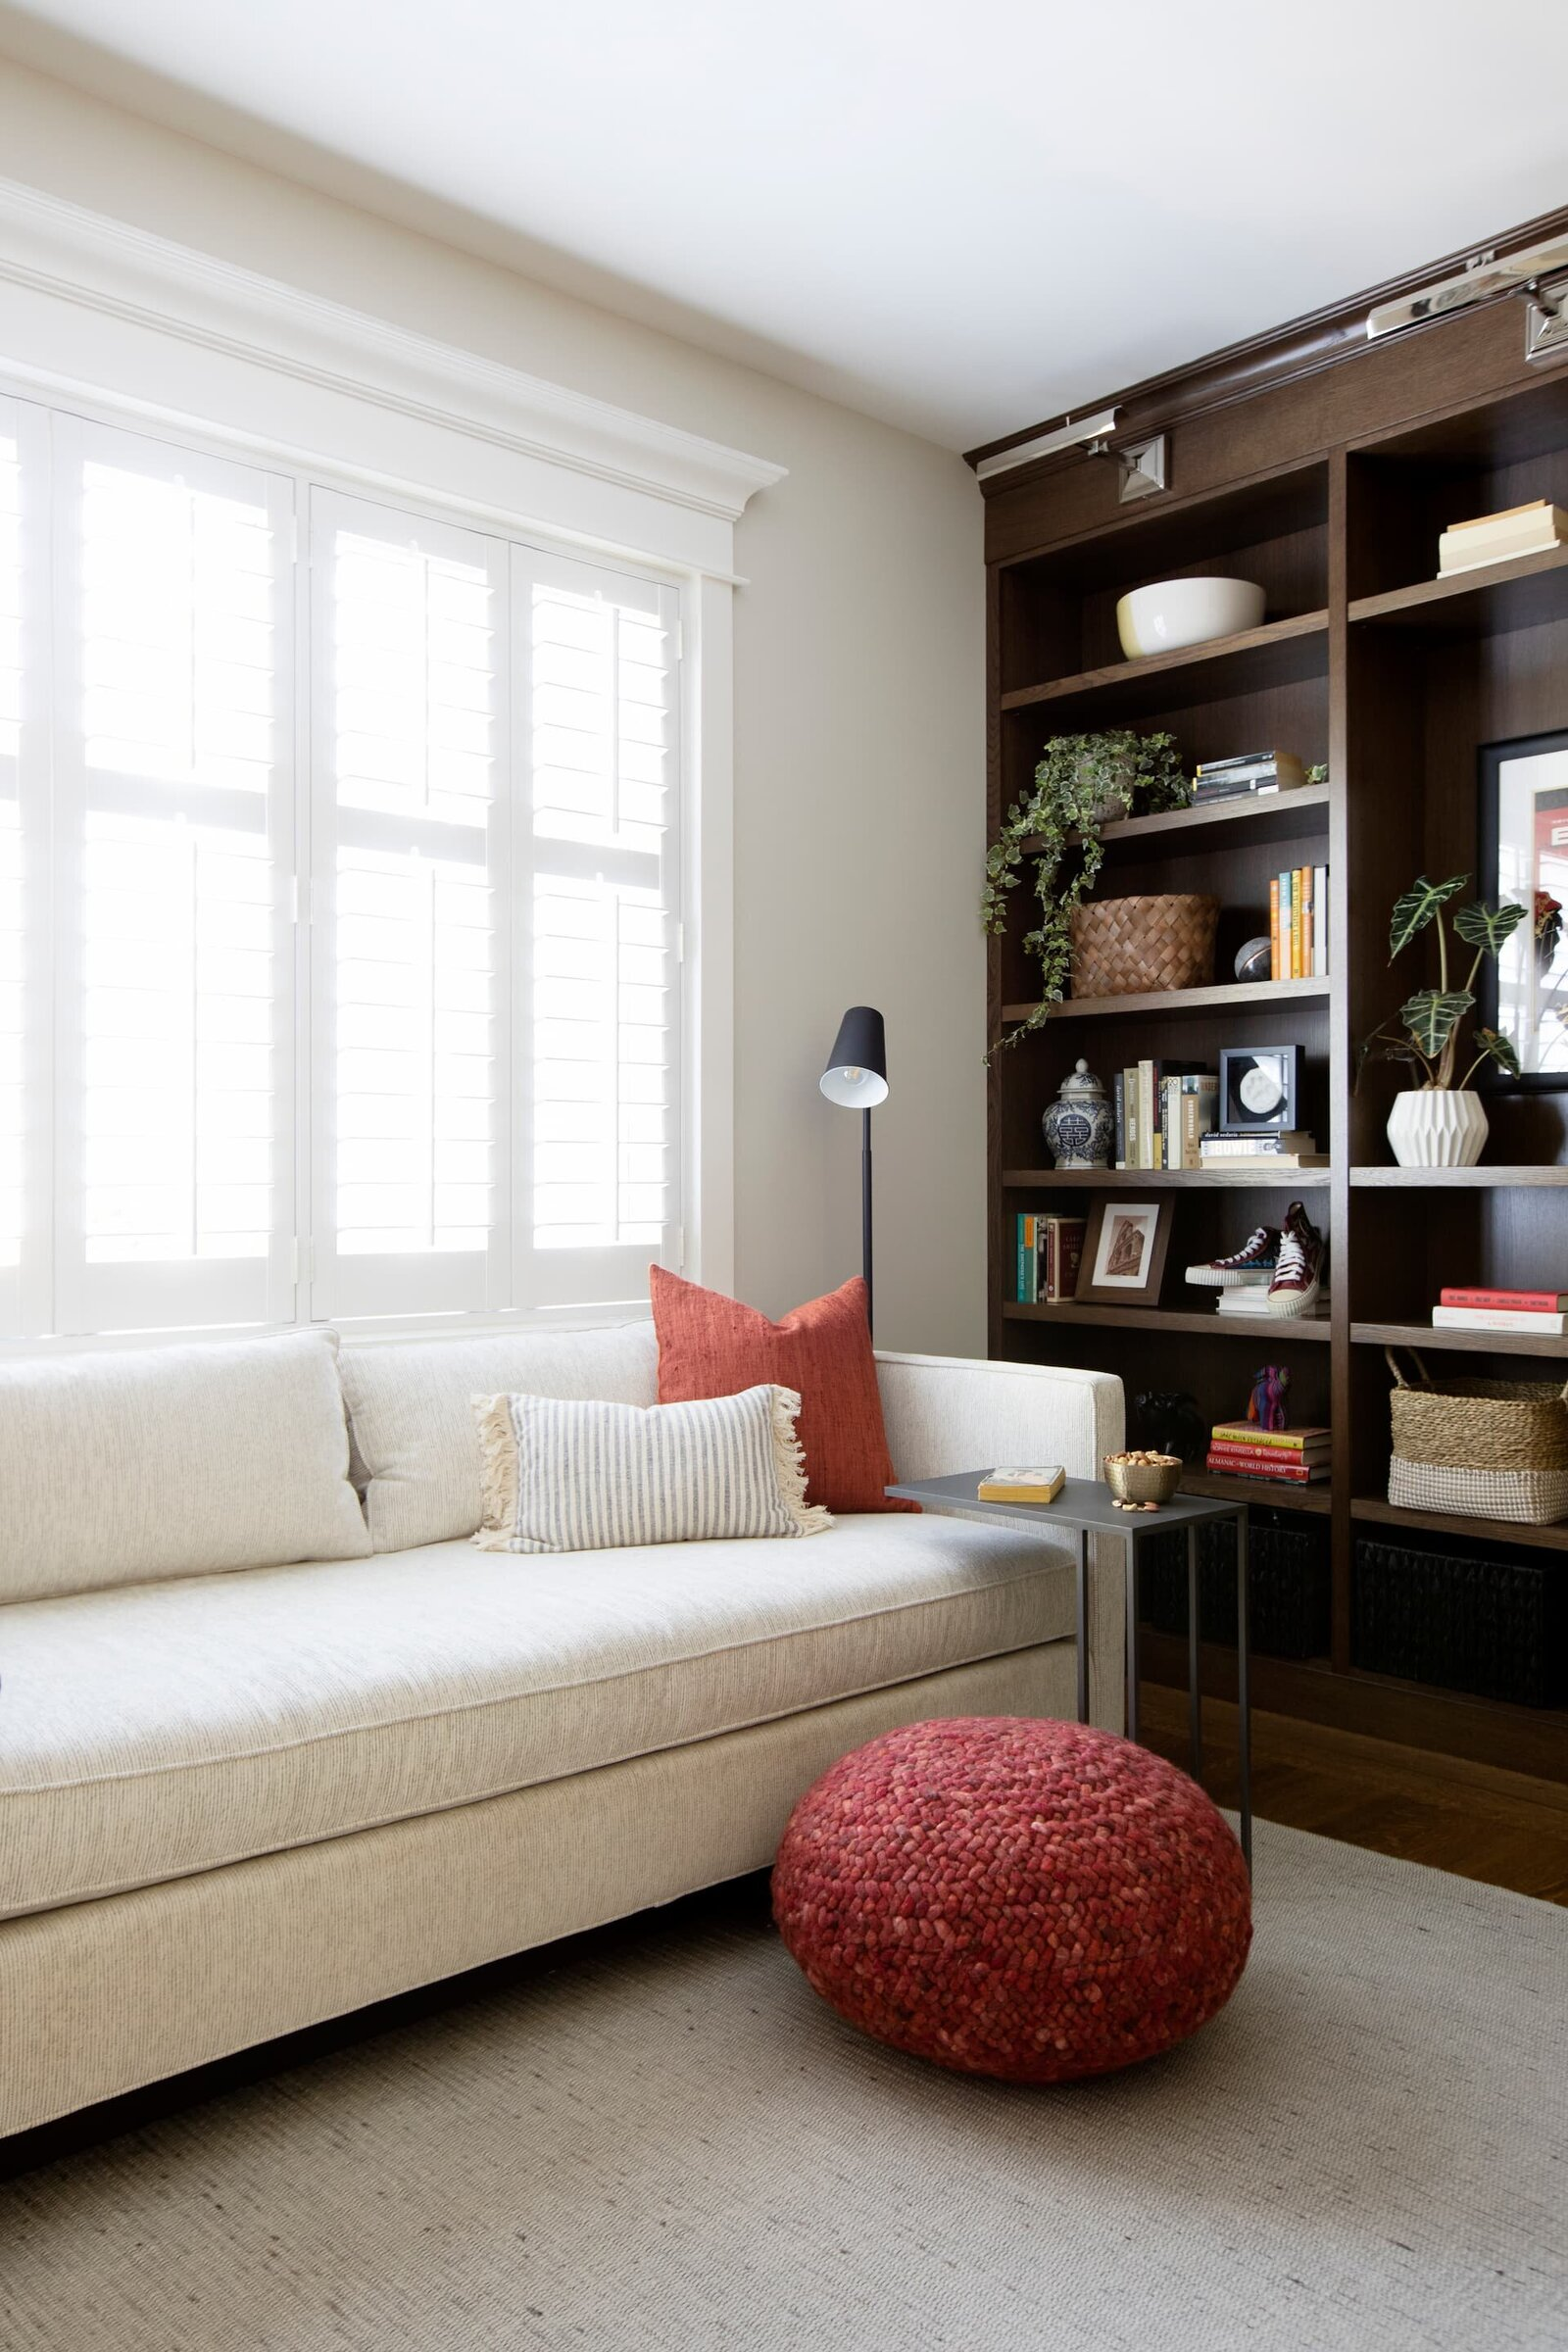 Granville Project l Den-Reading Room l Neutral Sofa with Red Pouf and Black Reading Lamp